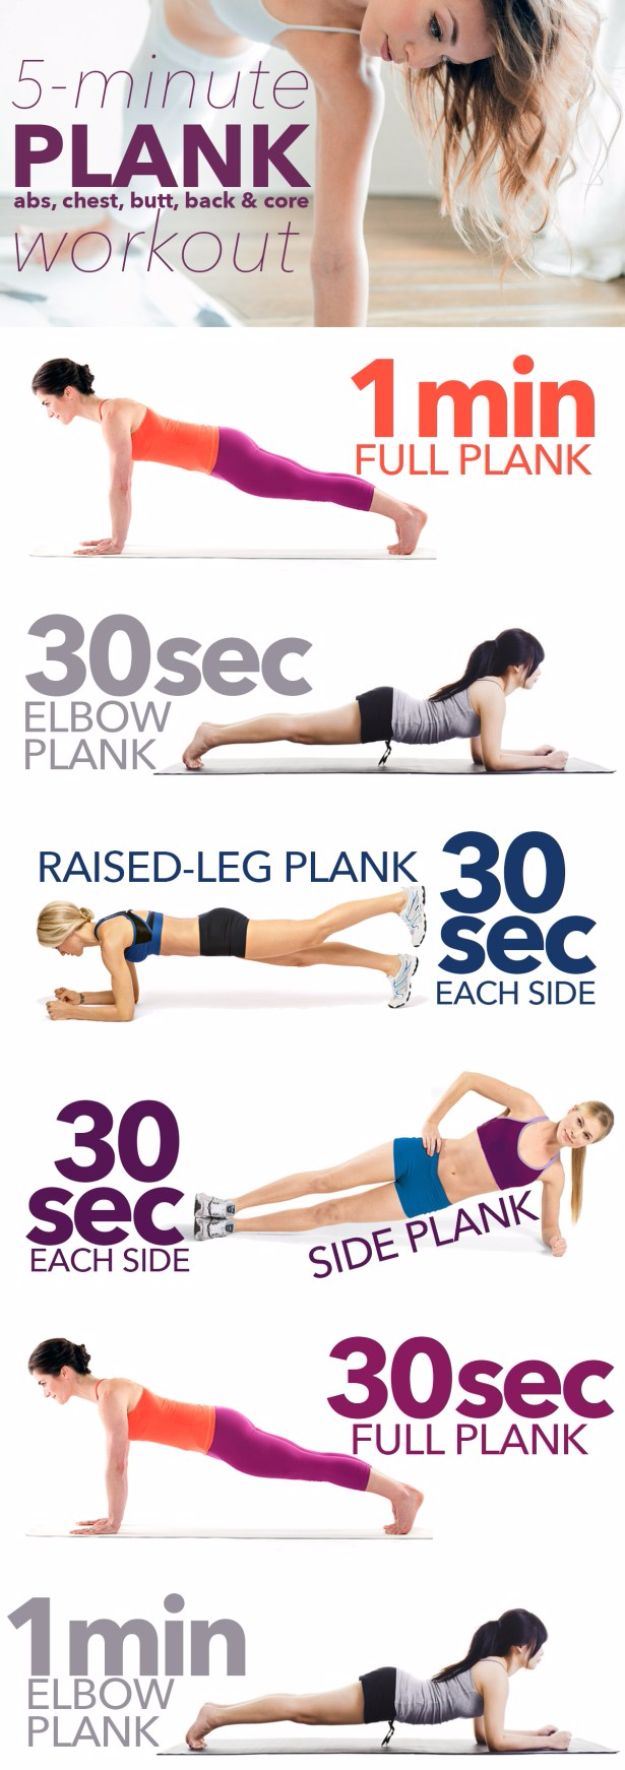 """Best Exercises for 2018 - 5-minute """"Almost-No-Work"""" Plank Workout - Easy At Home Exercises - Quick Exercise Tutorials to Try at Lunch Break - Ways To Get In Shape - Butt, Abs, Arms, Legs, Thighs, Tummy http://diyjoy.com/best-at-home-exercises-2018"""